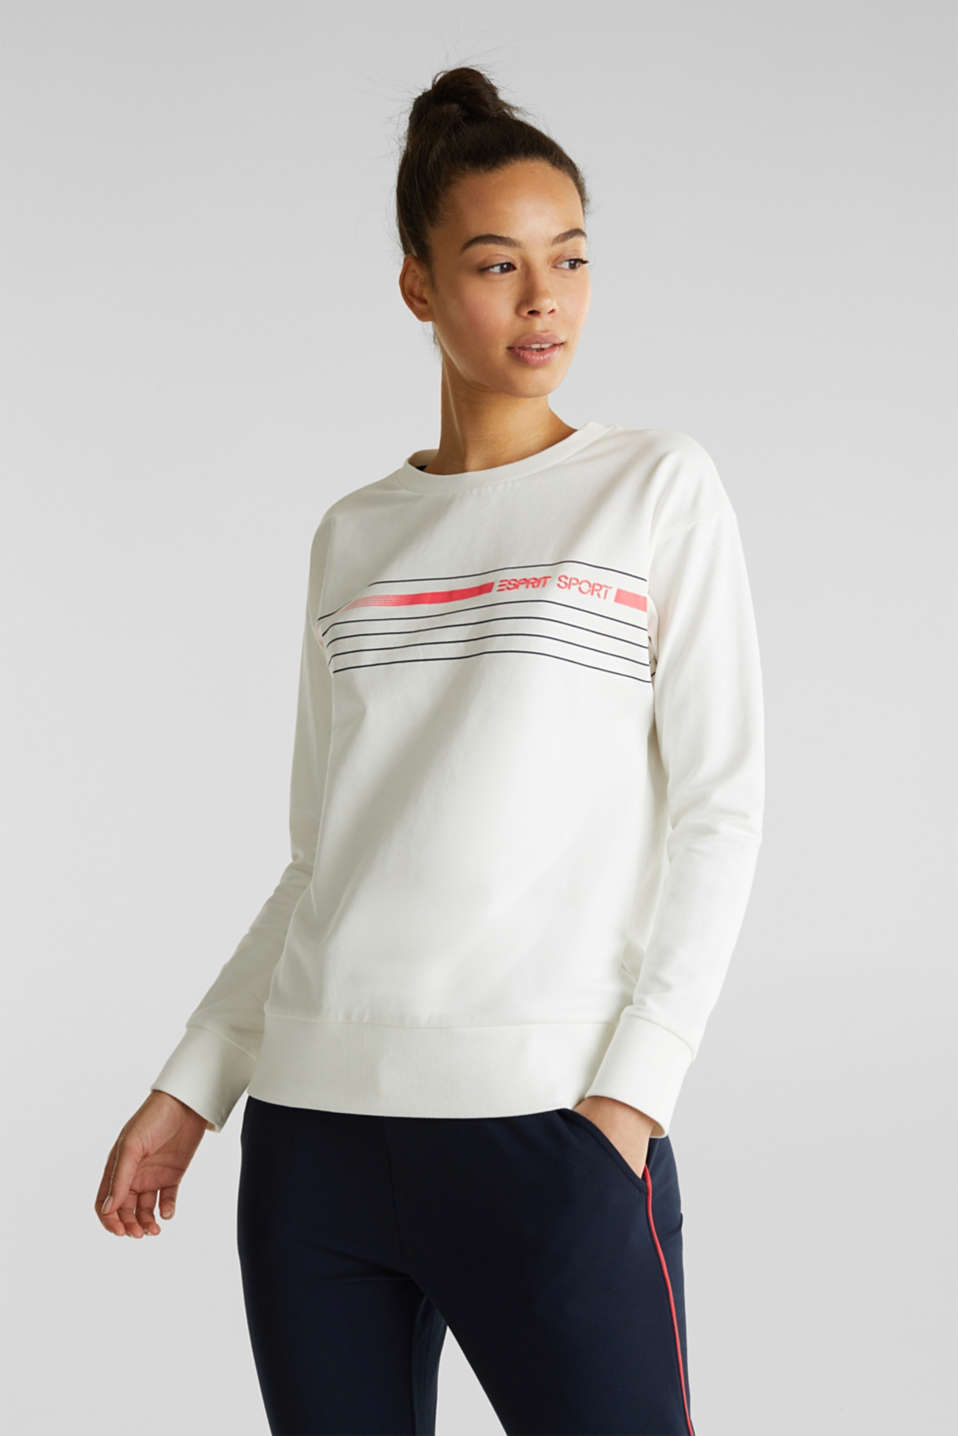 Esprit - Stretch sweatshirt with a print